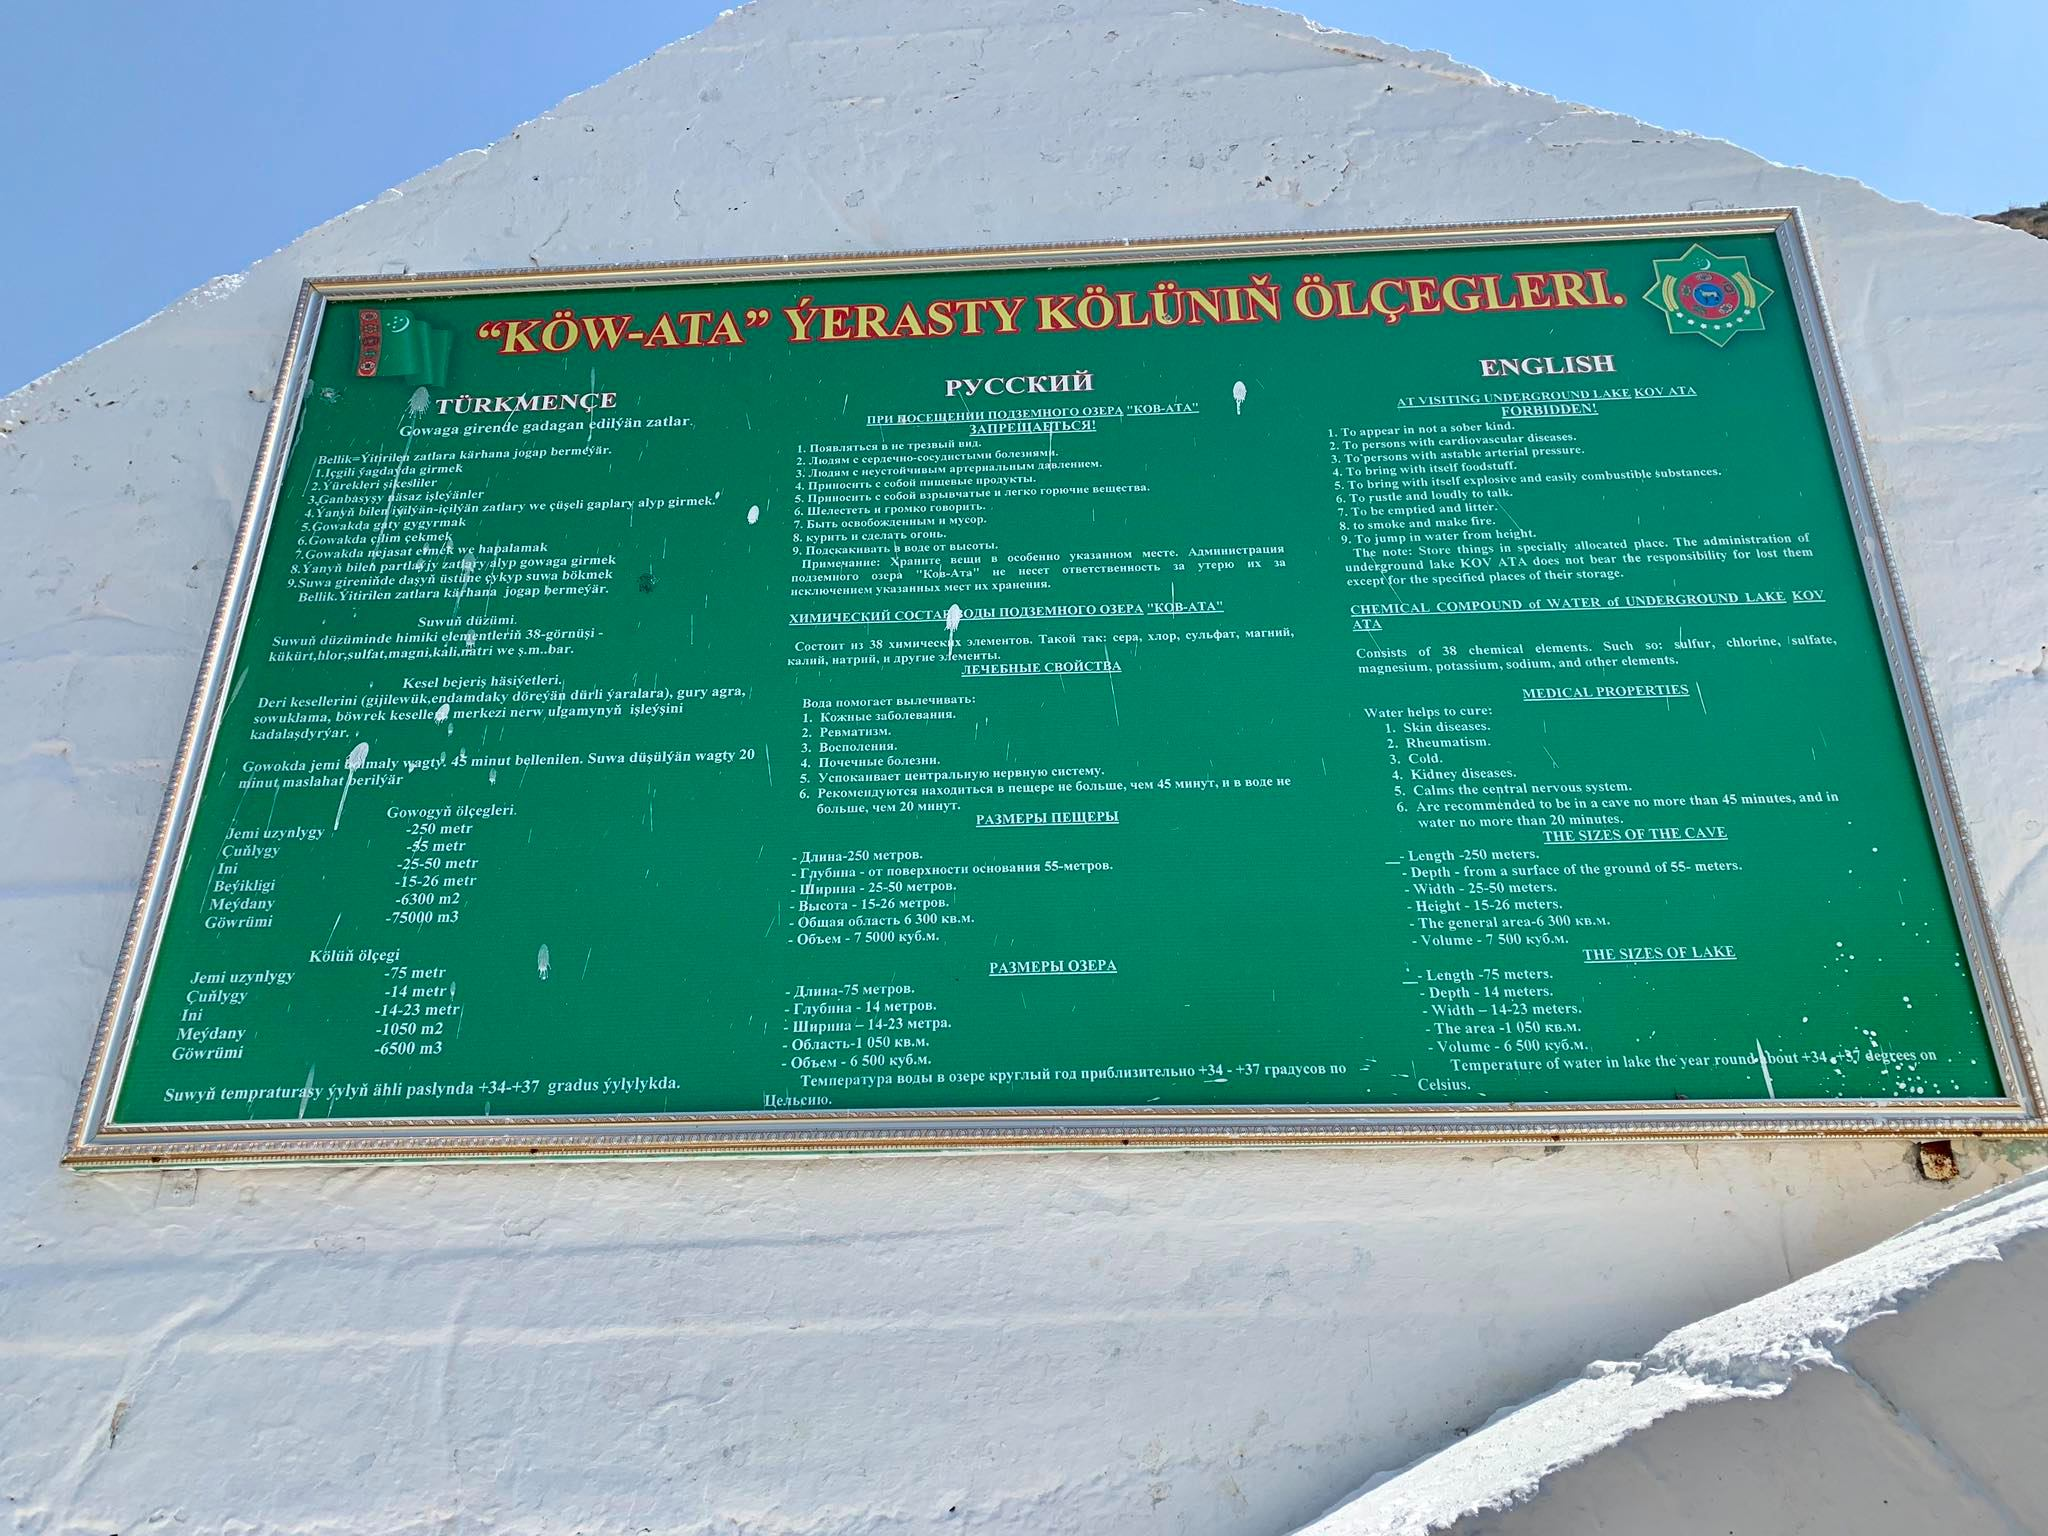 Kach Solo Travels in 2019 Visited the Underground Cave of Kov Ata33.jpg